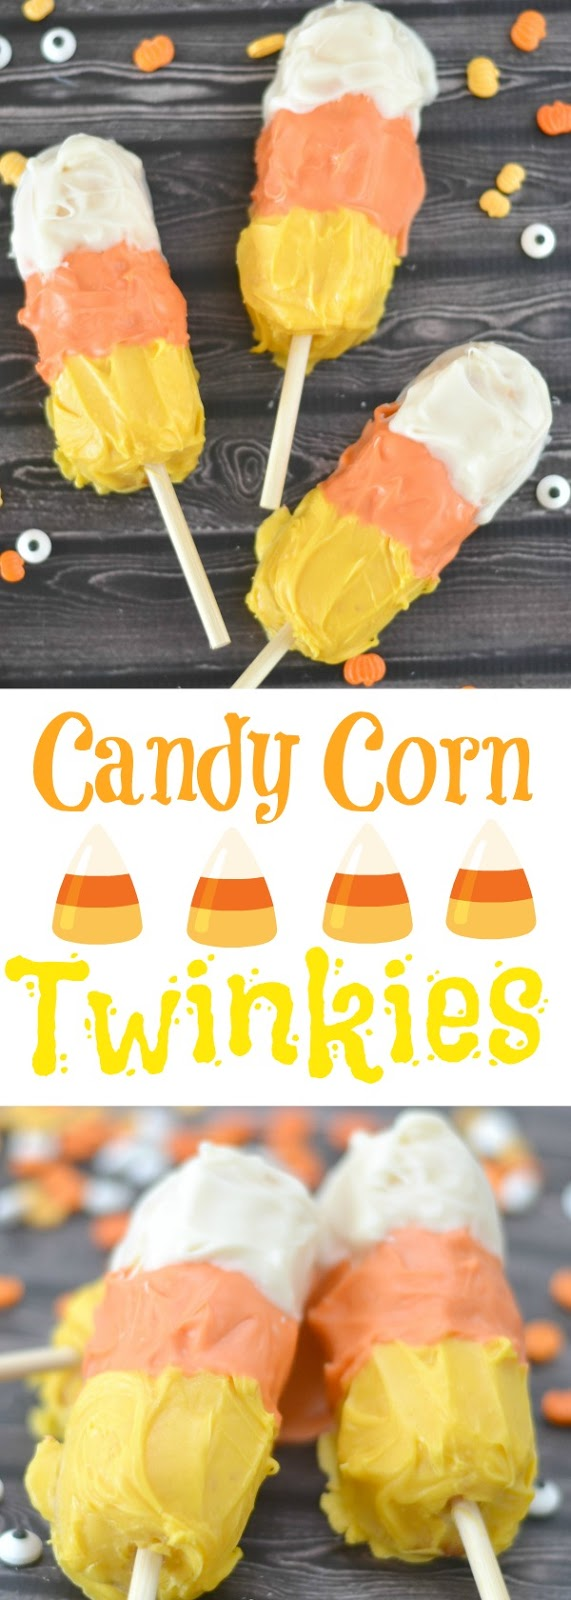 Candy Corn Twinkies, Halloween Twinkies, Halloween Treats, fun halloween desserts for kids, fun Halloween treats for kids, Halloween Party Food, Halloween Party, Halloween Food, Halloween party ideas